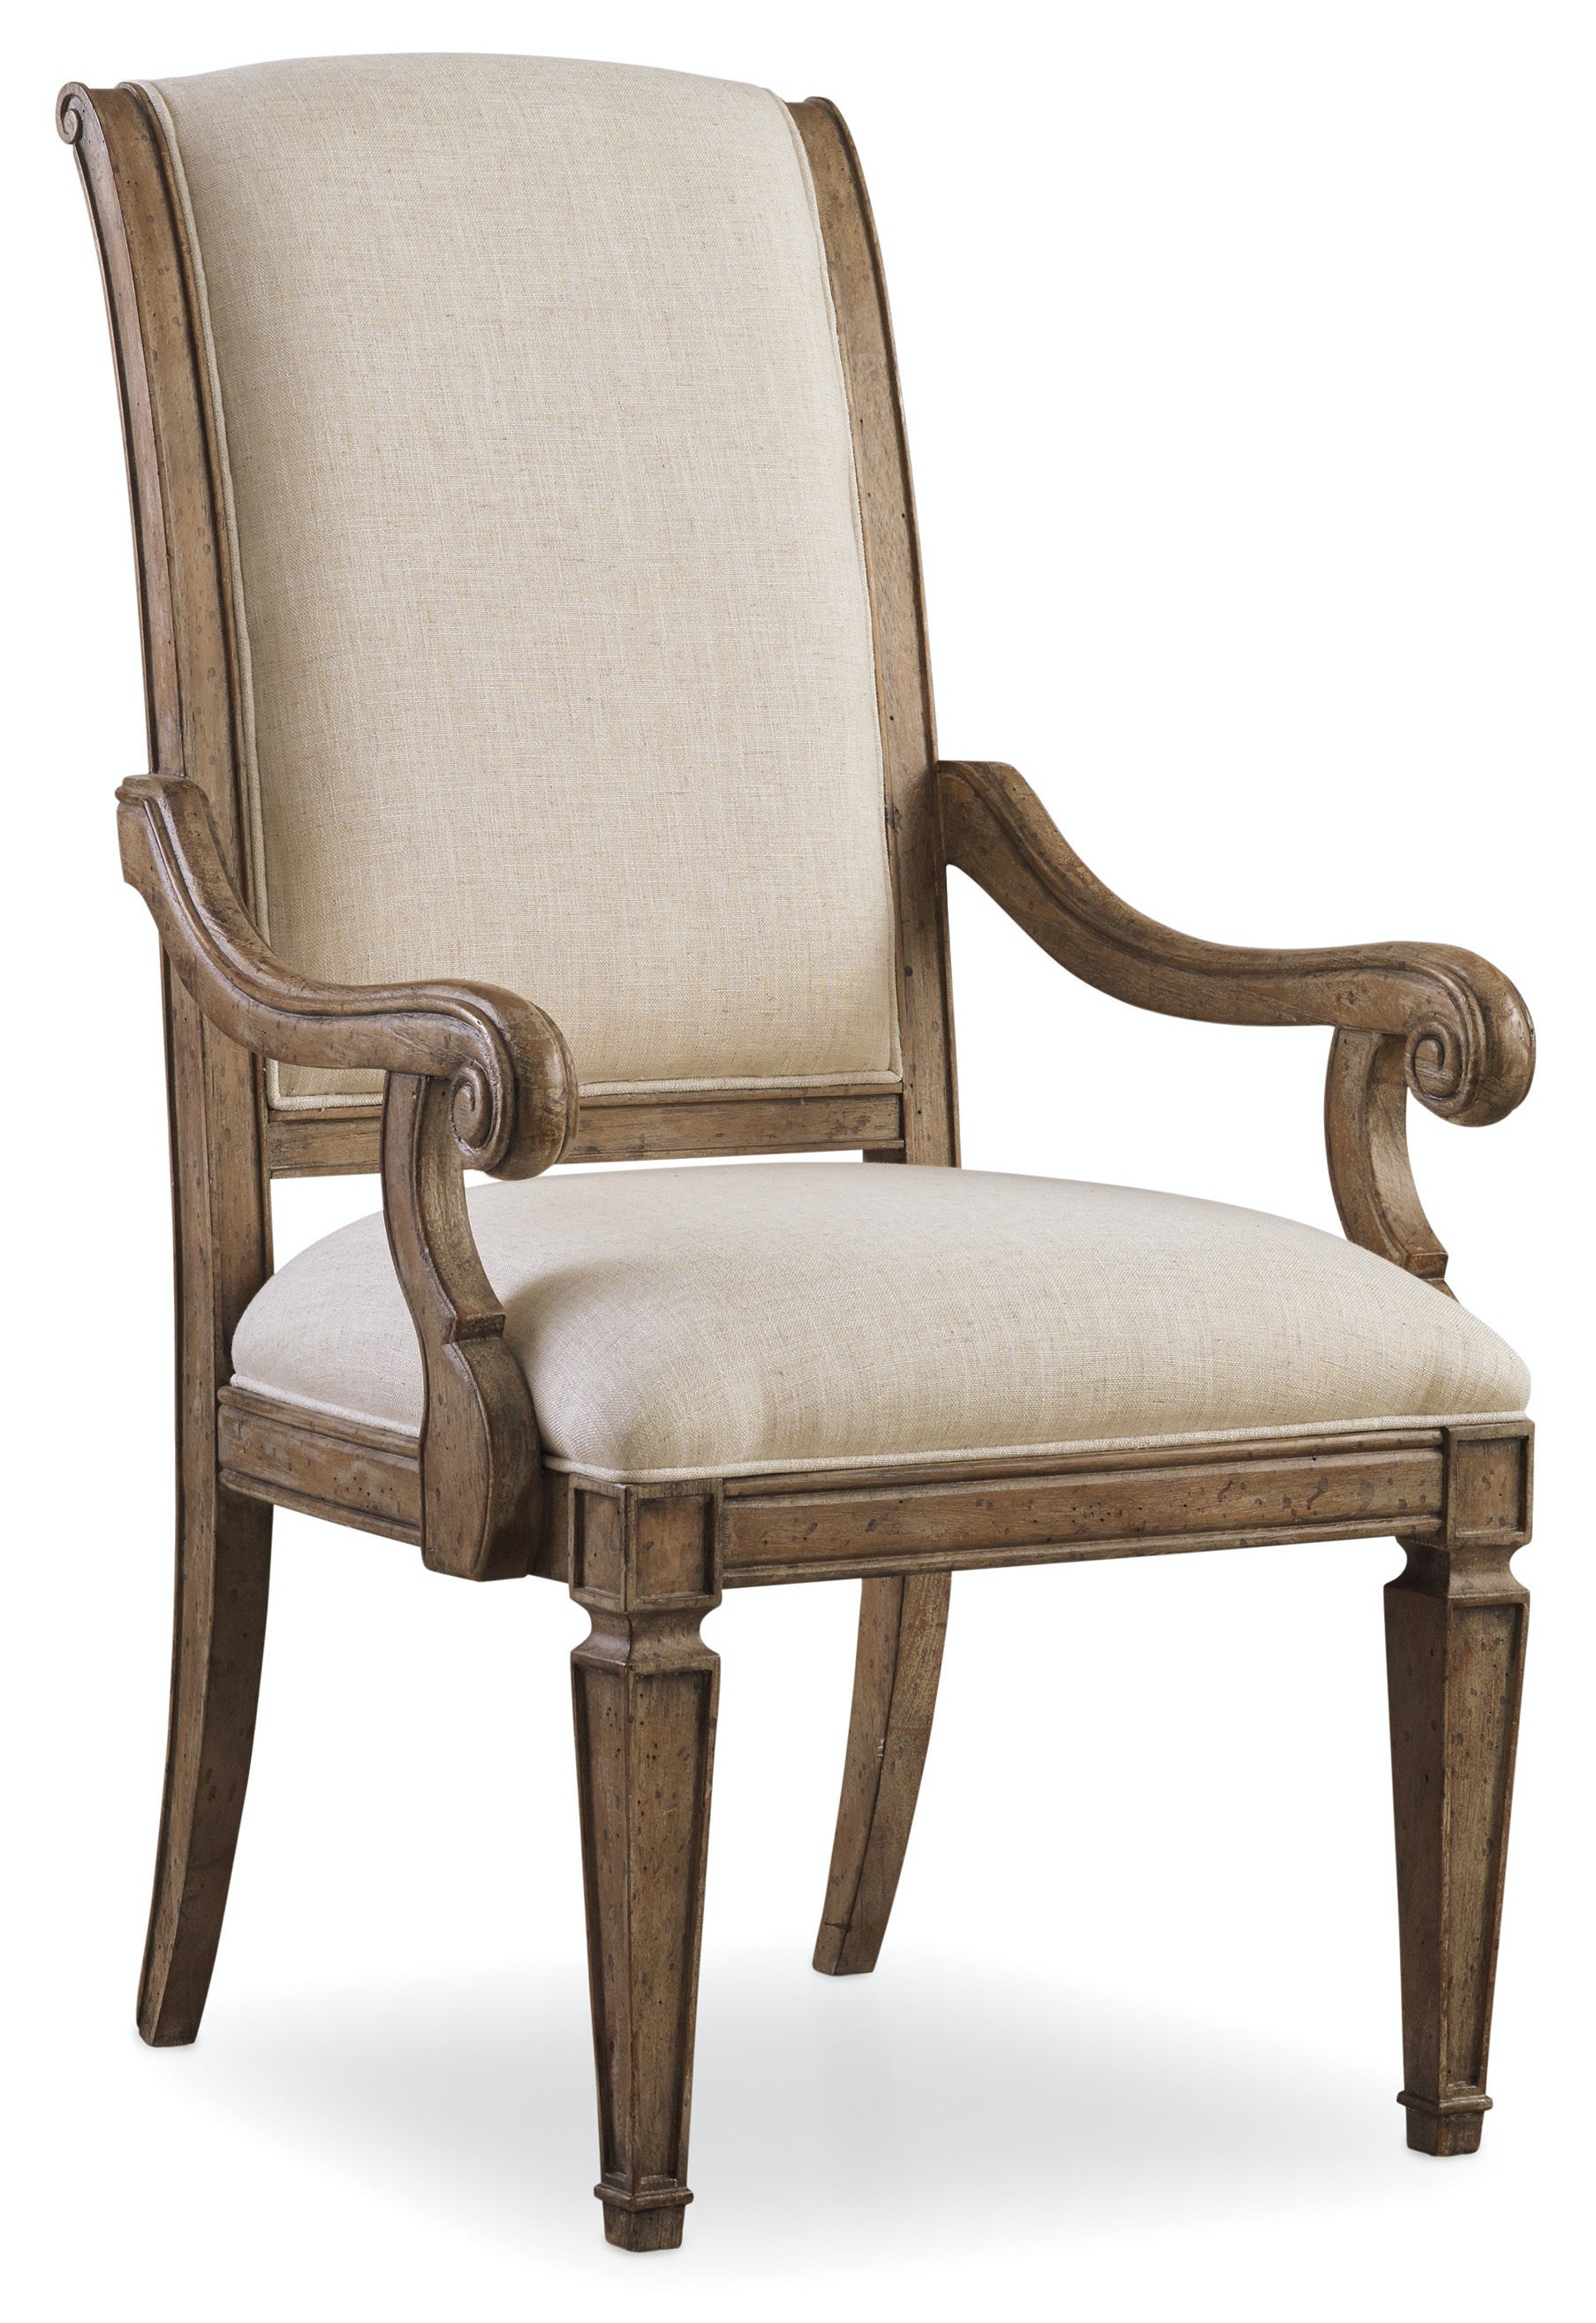 Hooker Furniture Dining Room Solana Upholstered Arm Chair 5291-75500